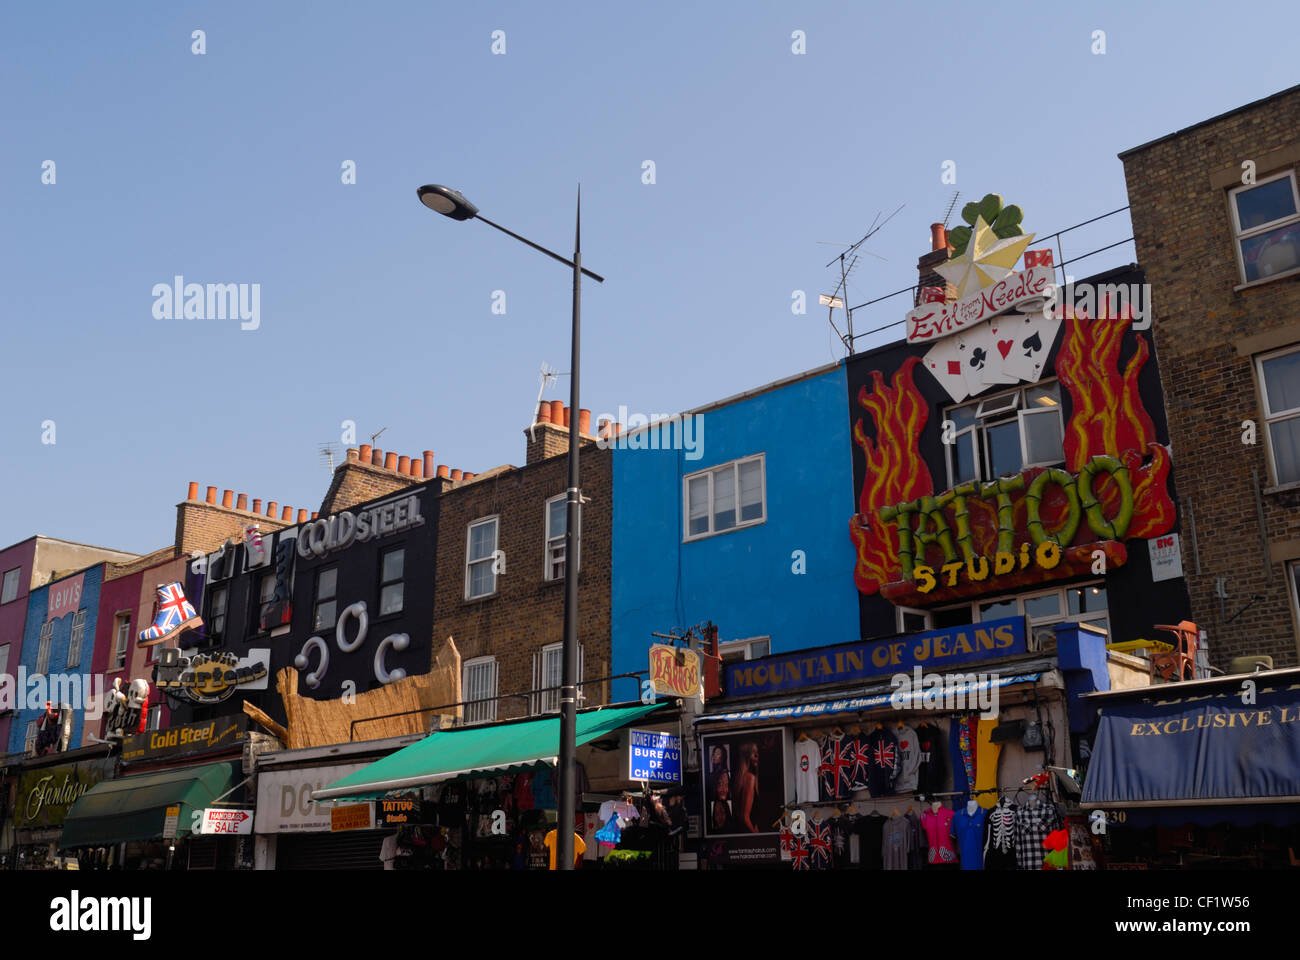 Colourful and elaborate shopfronts compete to get shoppers attention in Camden High Street near the market. - Stock Image